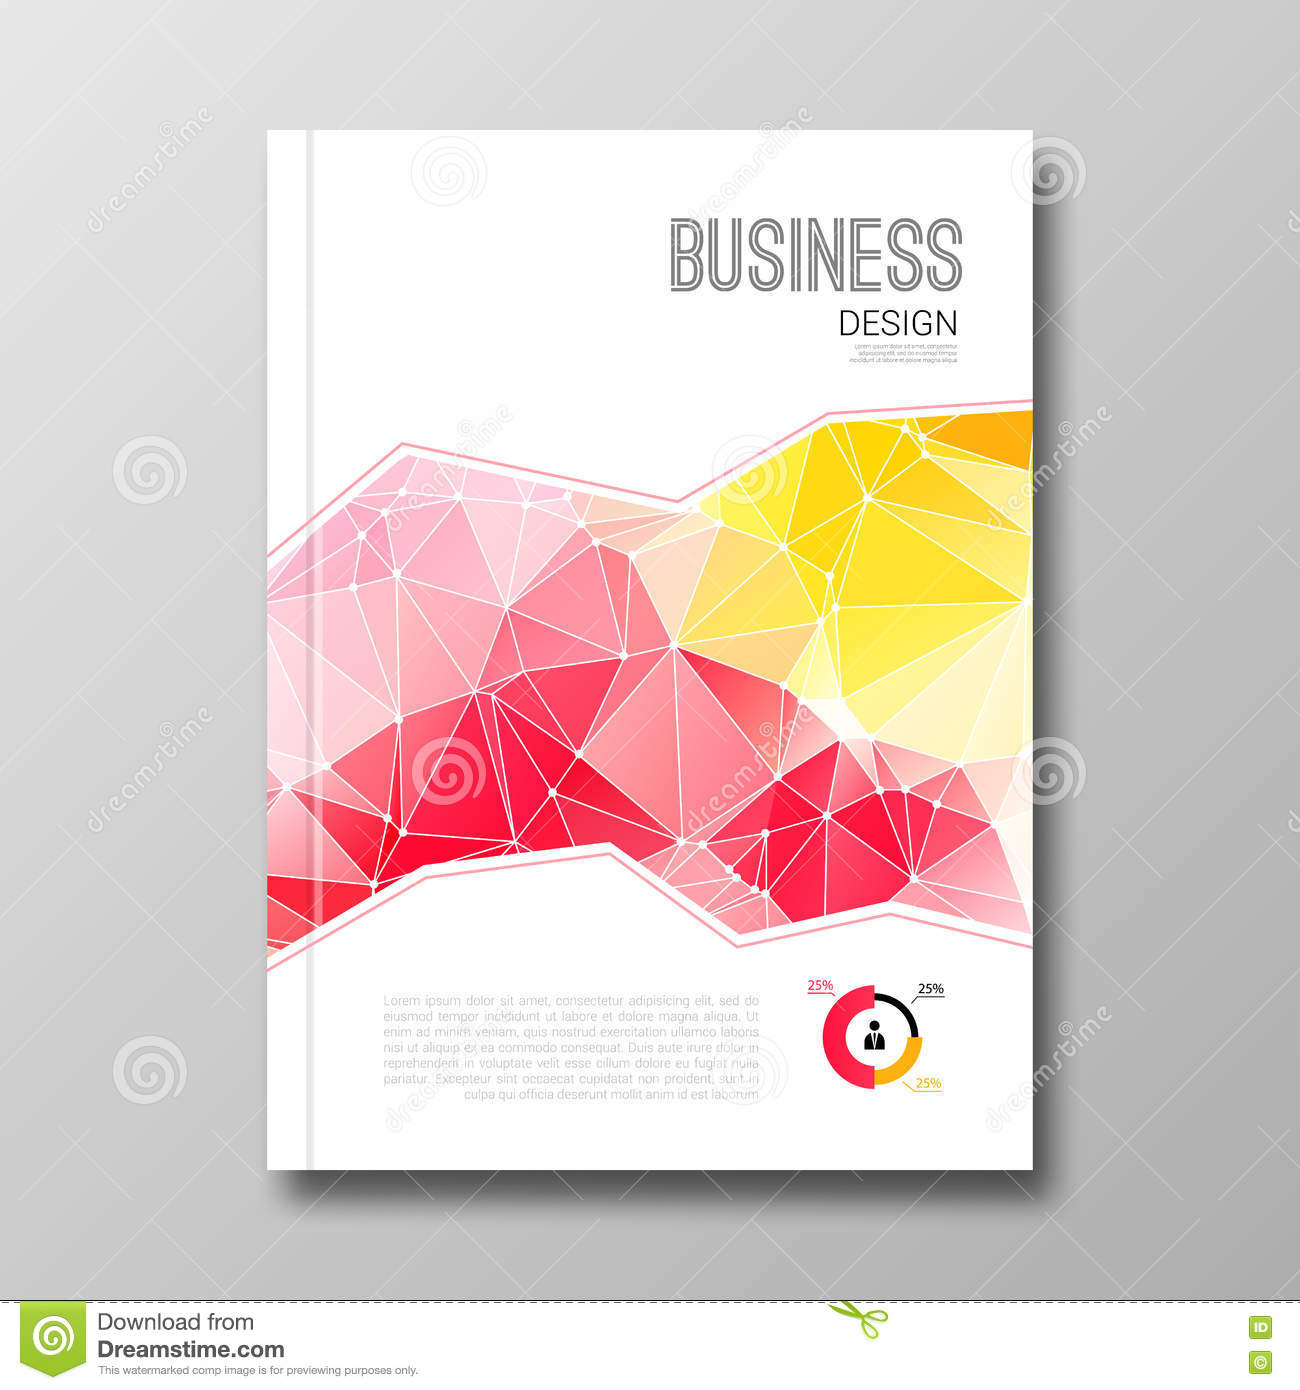 business design template cover brochure book flyer magazine layout